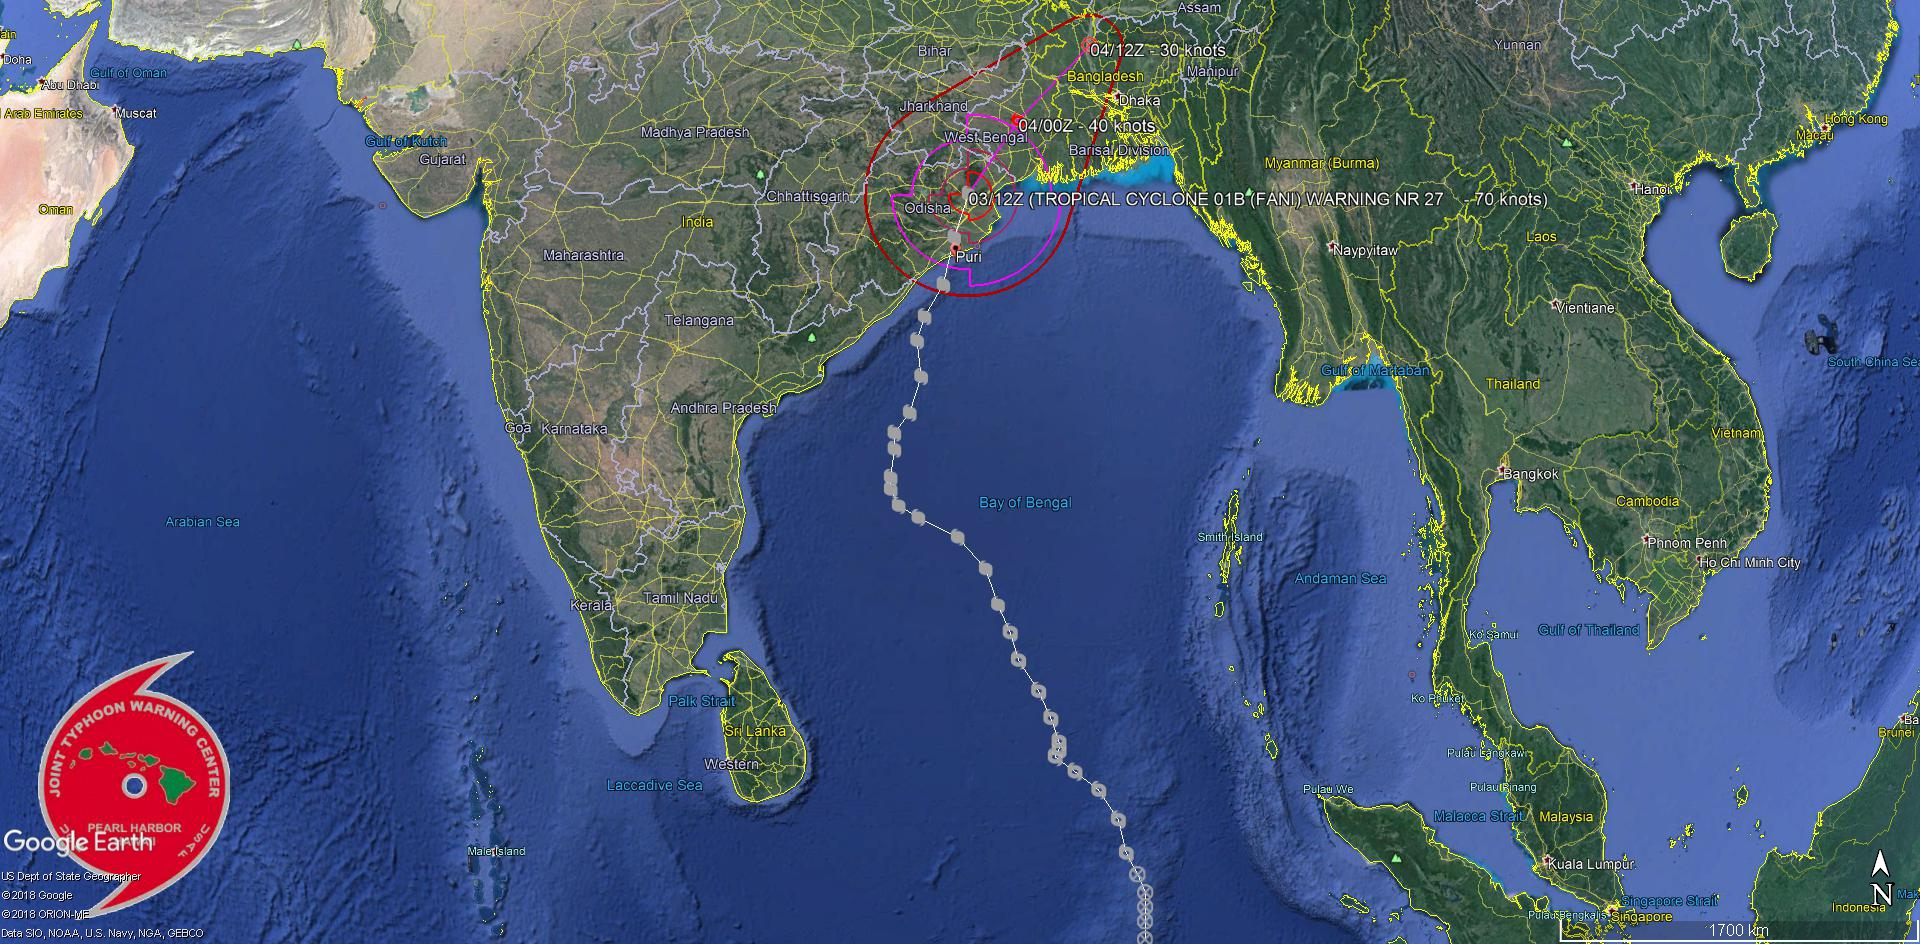 """FANI(01B) was the 1st """"Super Cyclone"""" over the North Indian basin since CHAPALA(04A) in October 2015"""